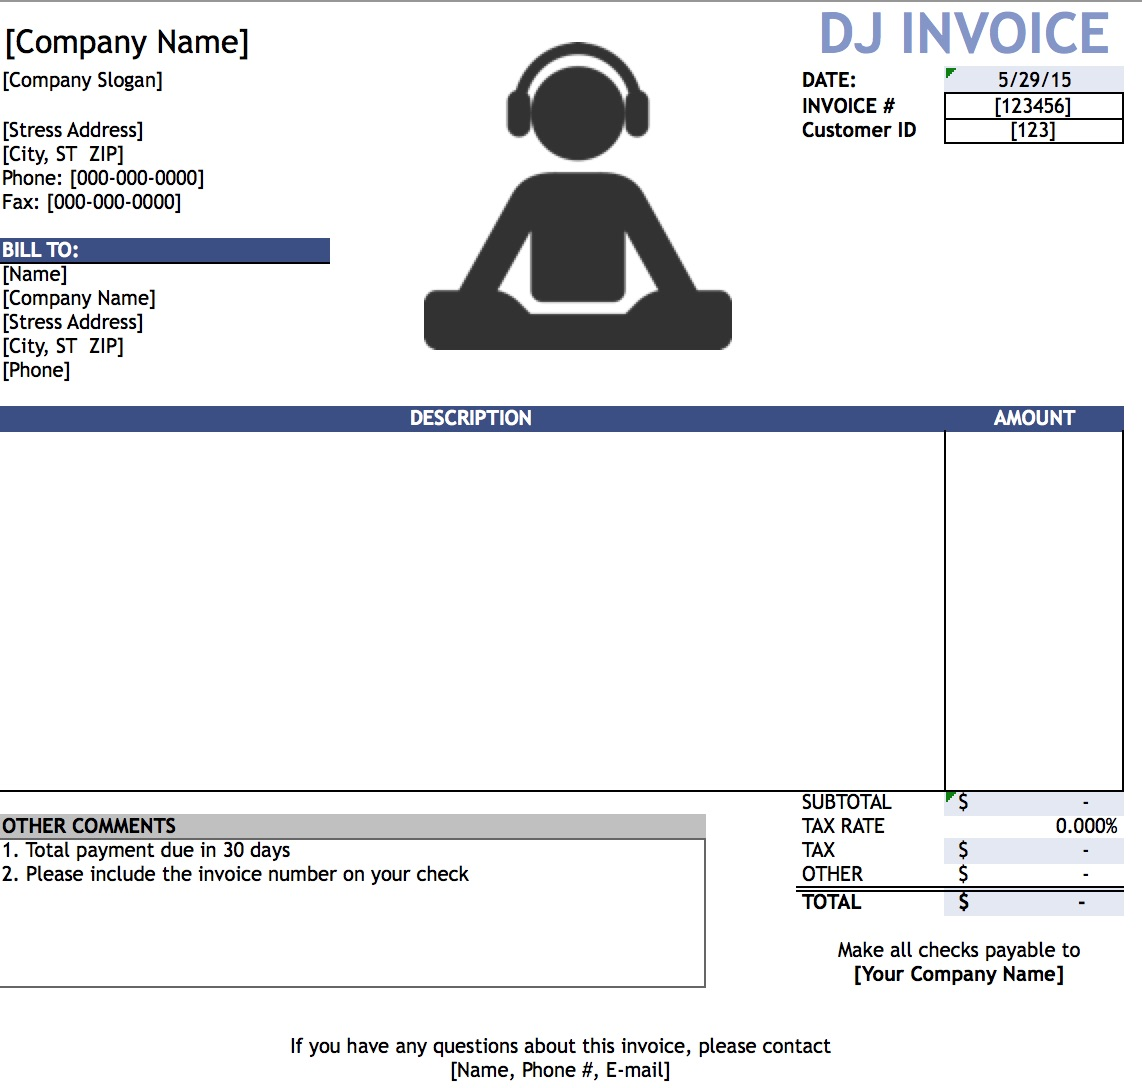 Free DJ Disc Jockey Invoice Template Excel PDF Word Doc - Rent invoice format in word t mobile online store